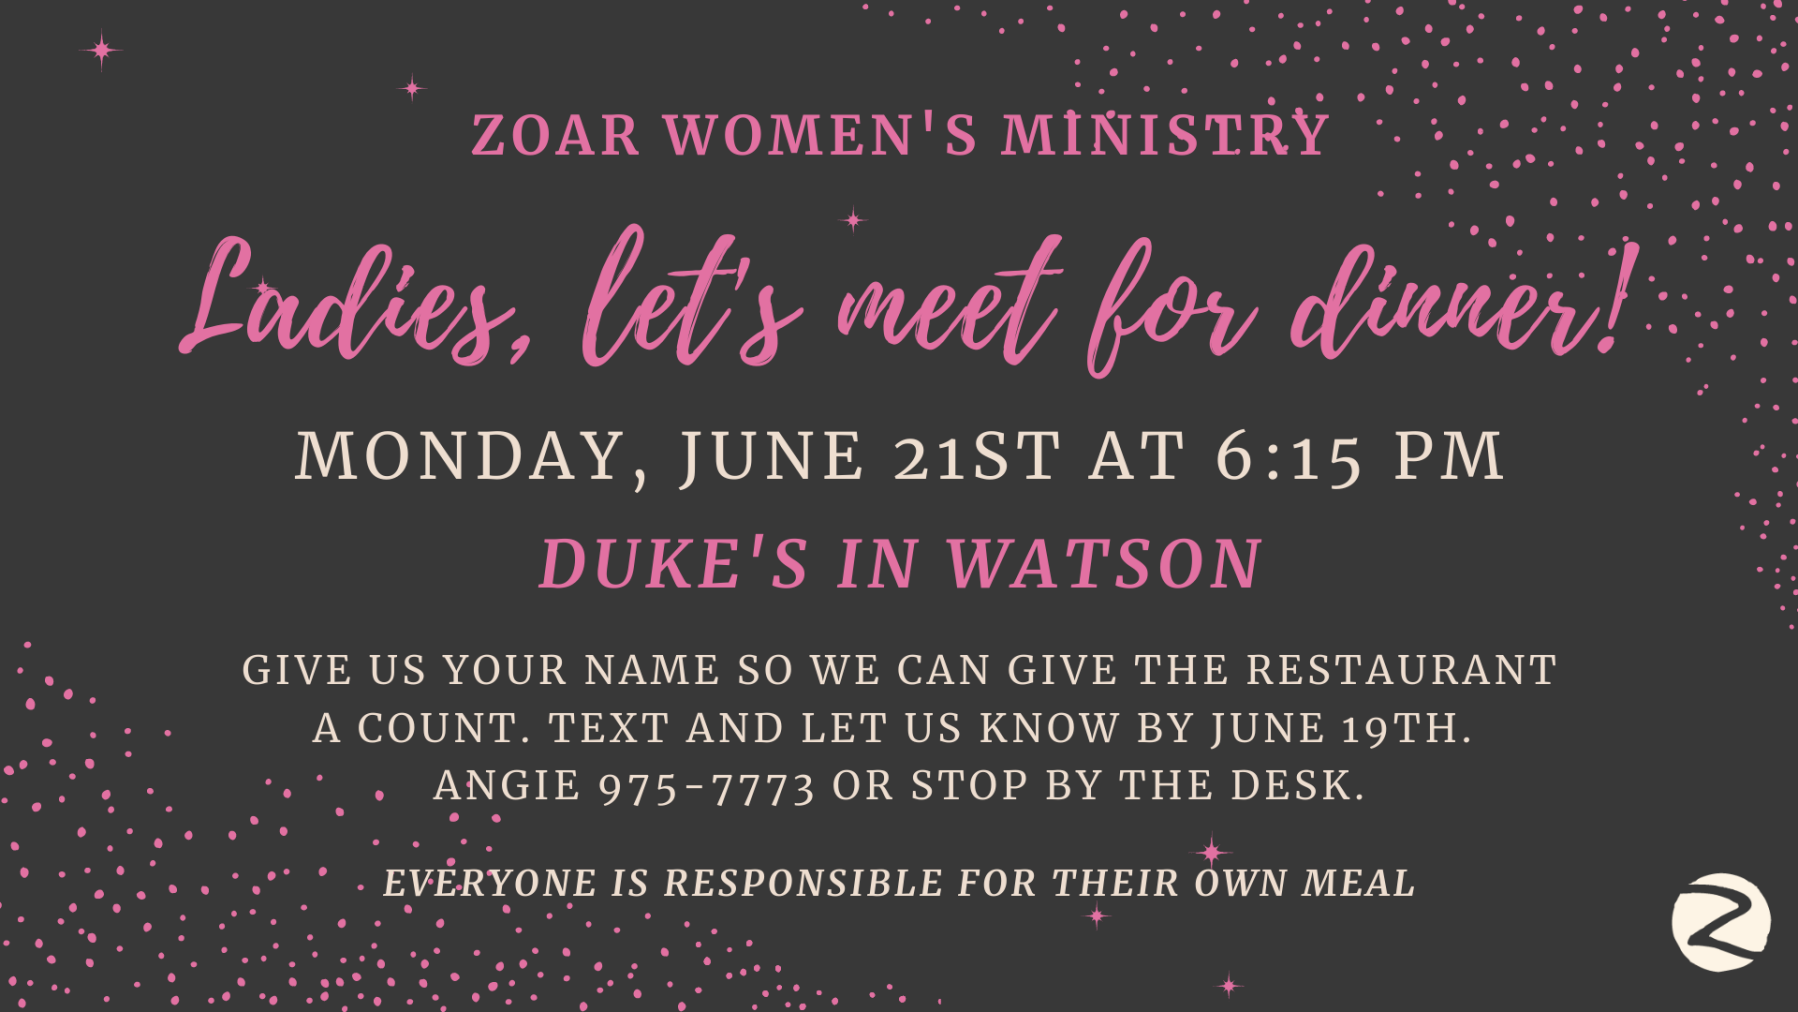 Women's Ministry - Dinner at Dukes Seafood